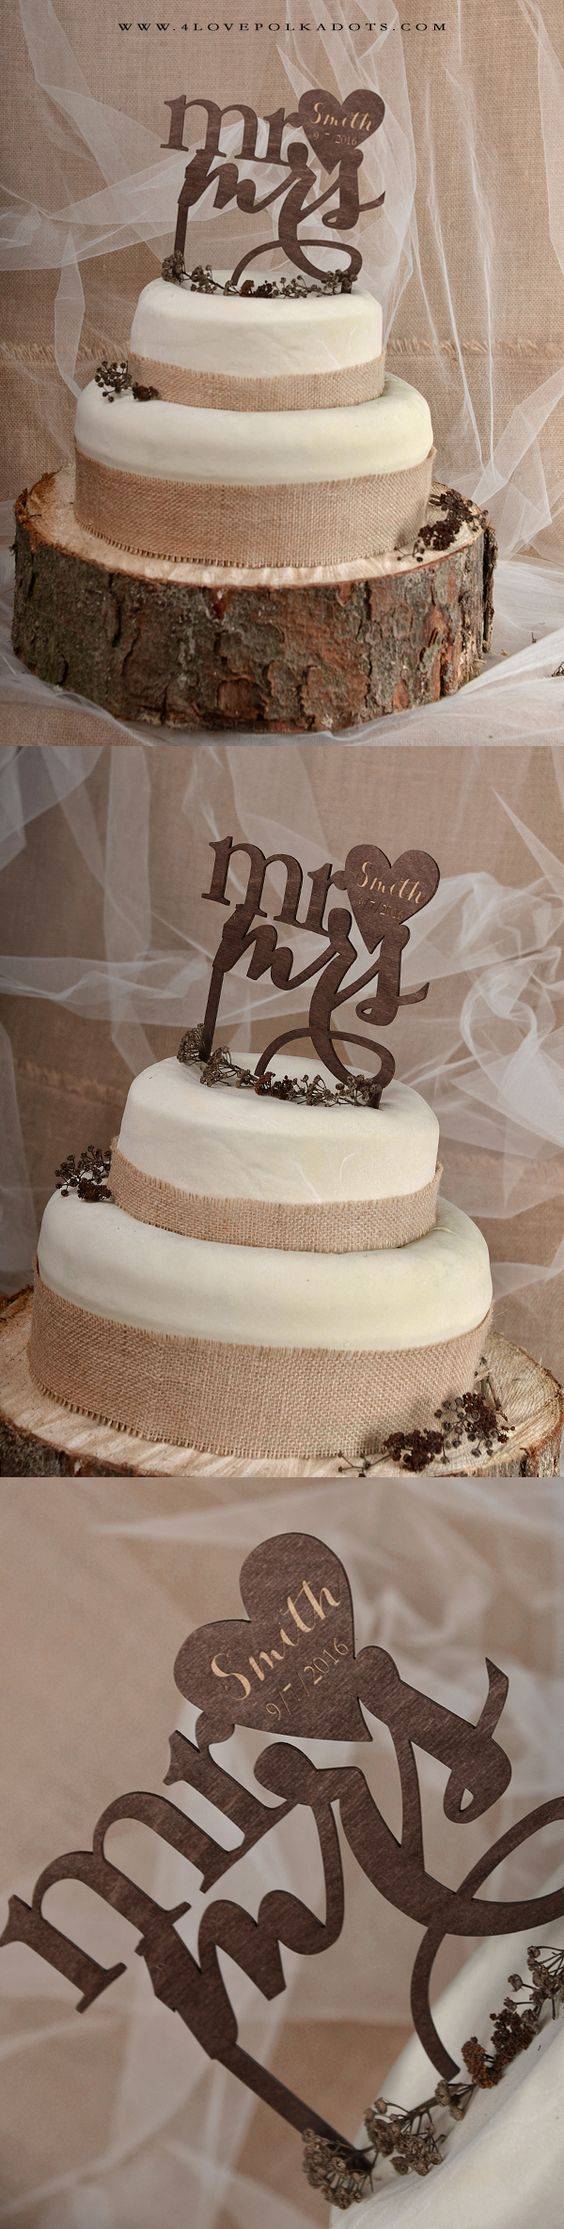 Mr & Mrs Wooden Wedding Cake Topper #realwood #rustic #country